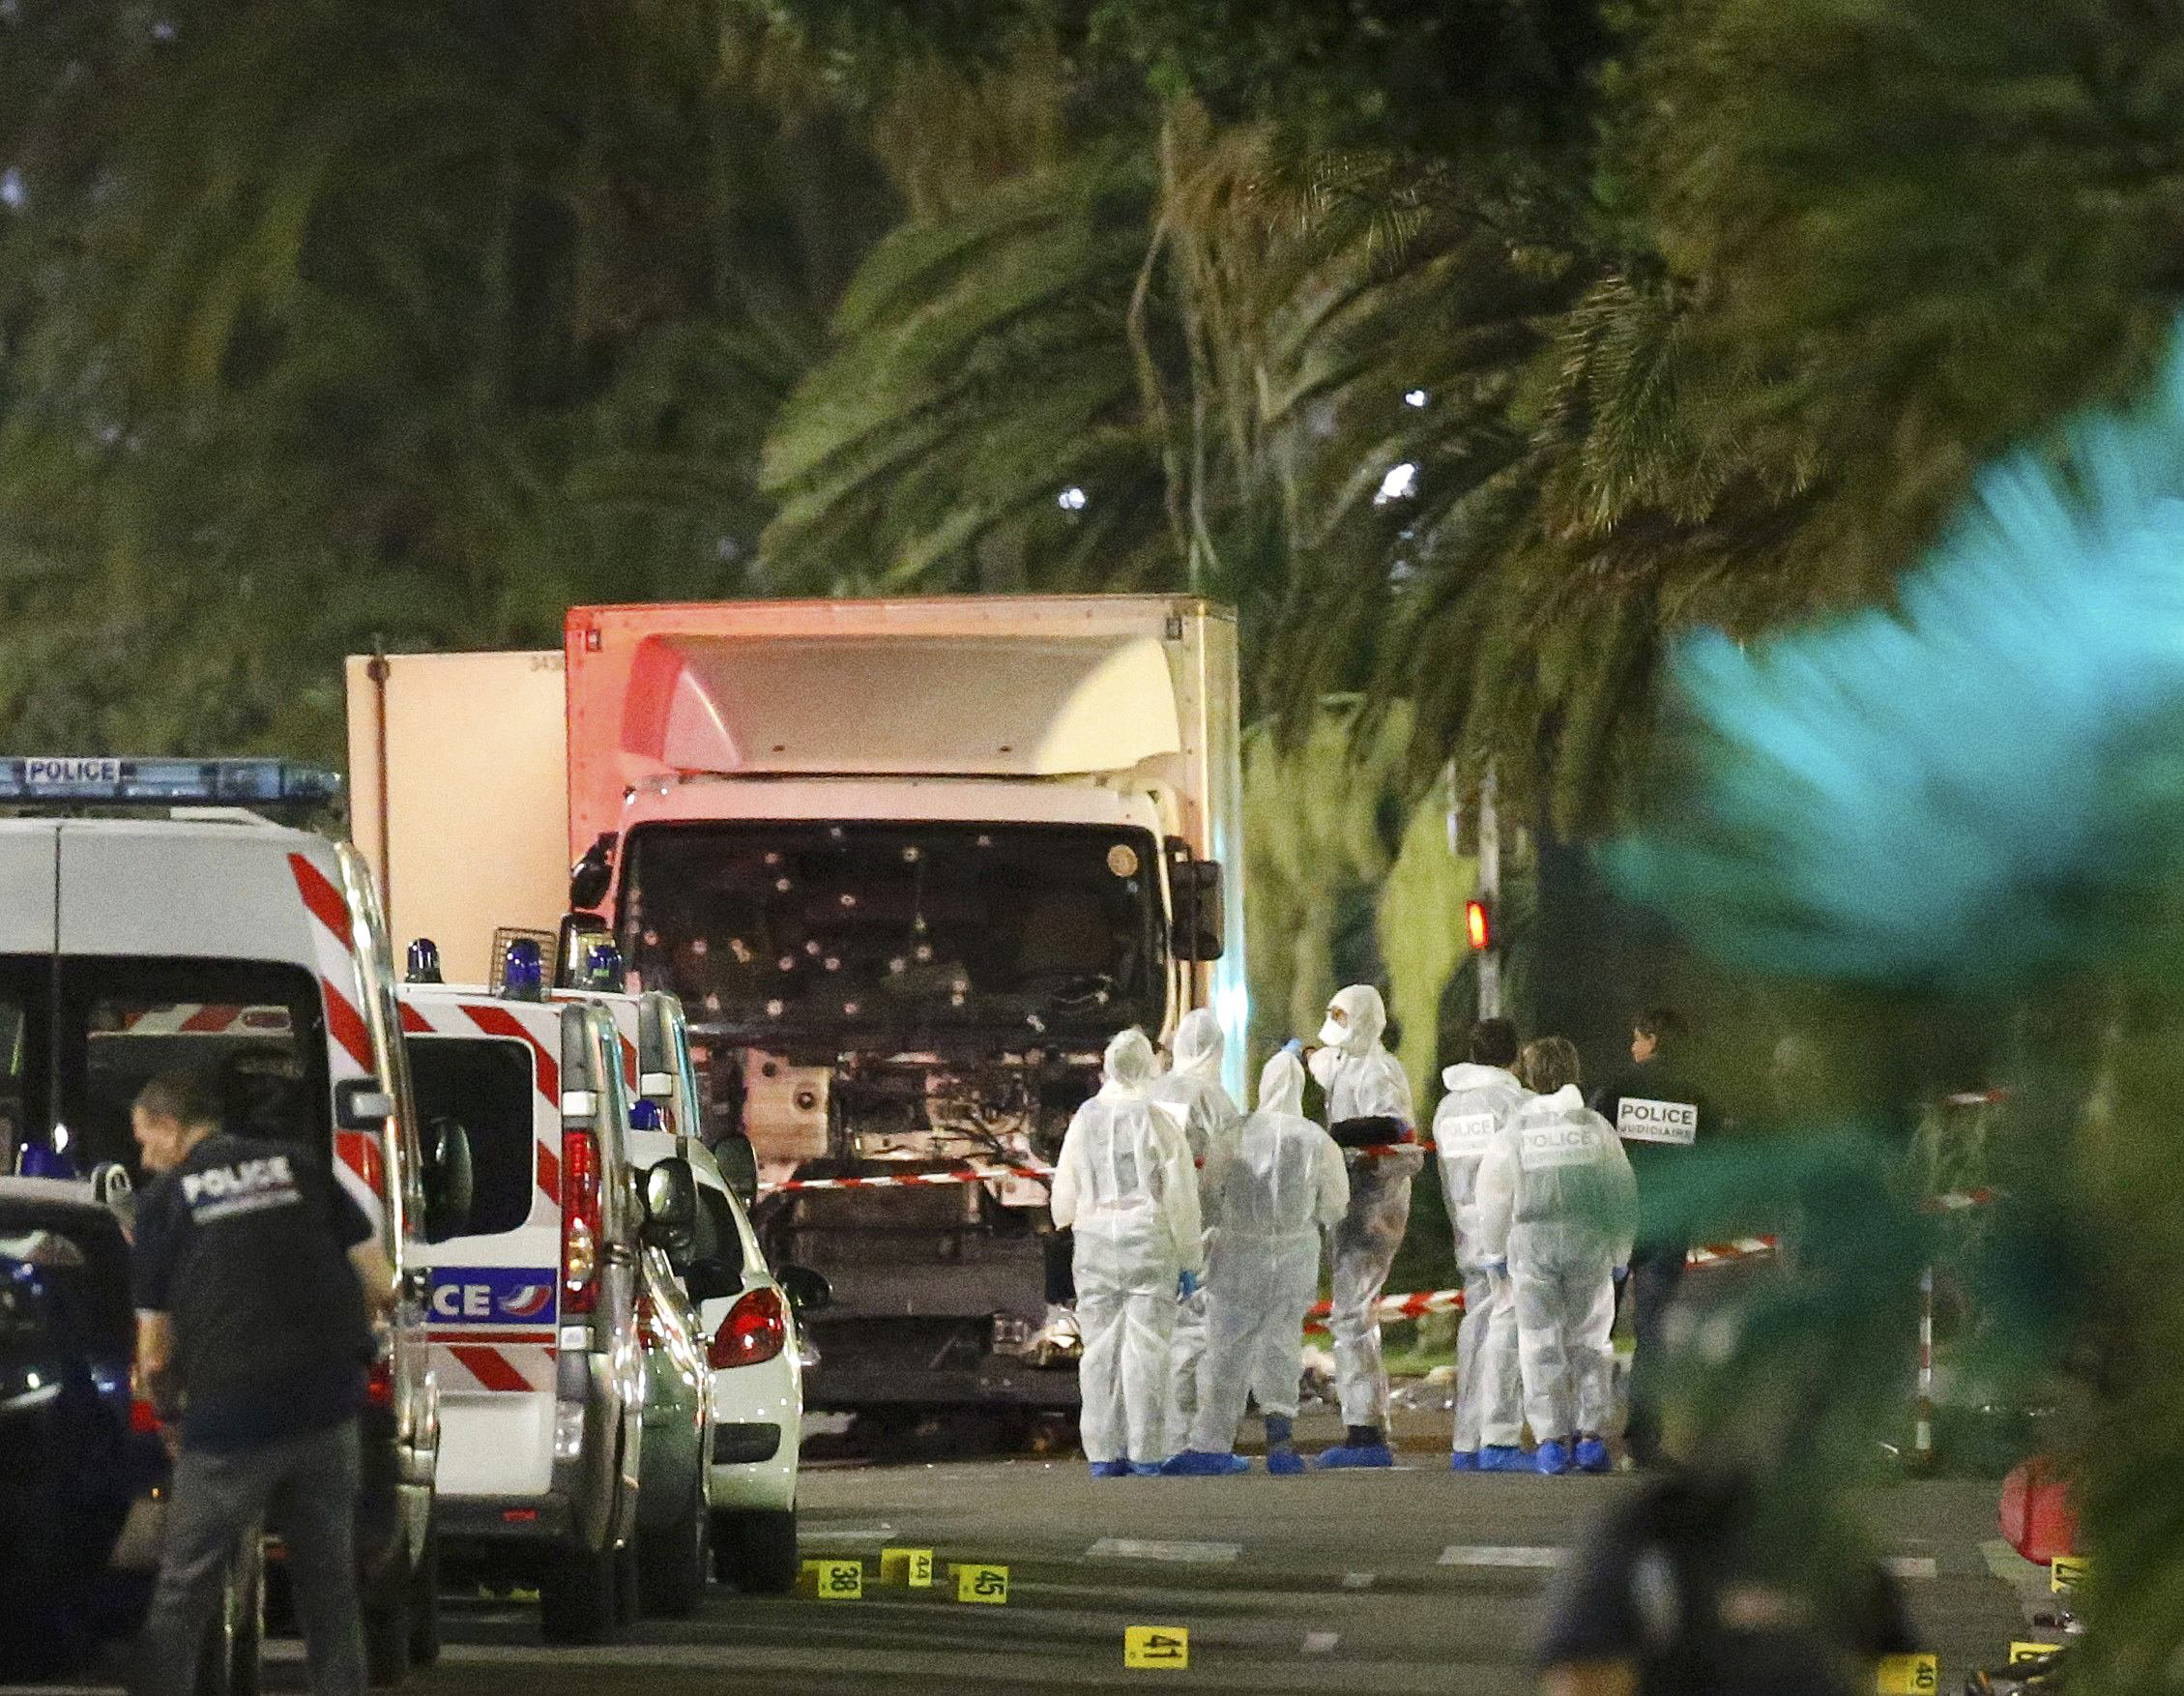 French police forces and forensic officers stand next to a truck in Nice, France, on July 15, 2016, after authorities said it ran into a crowd celebrating Bastille Day on the Promenade des Anglais, killing at least 84 people.